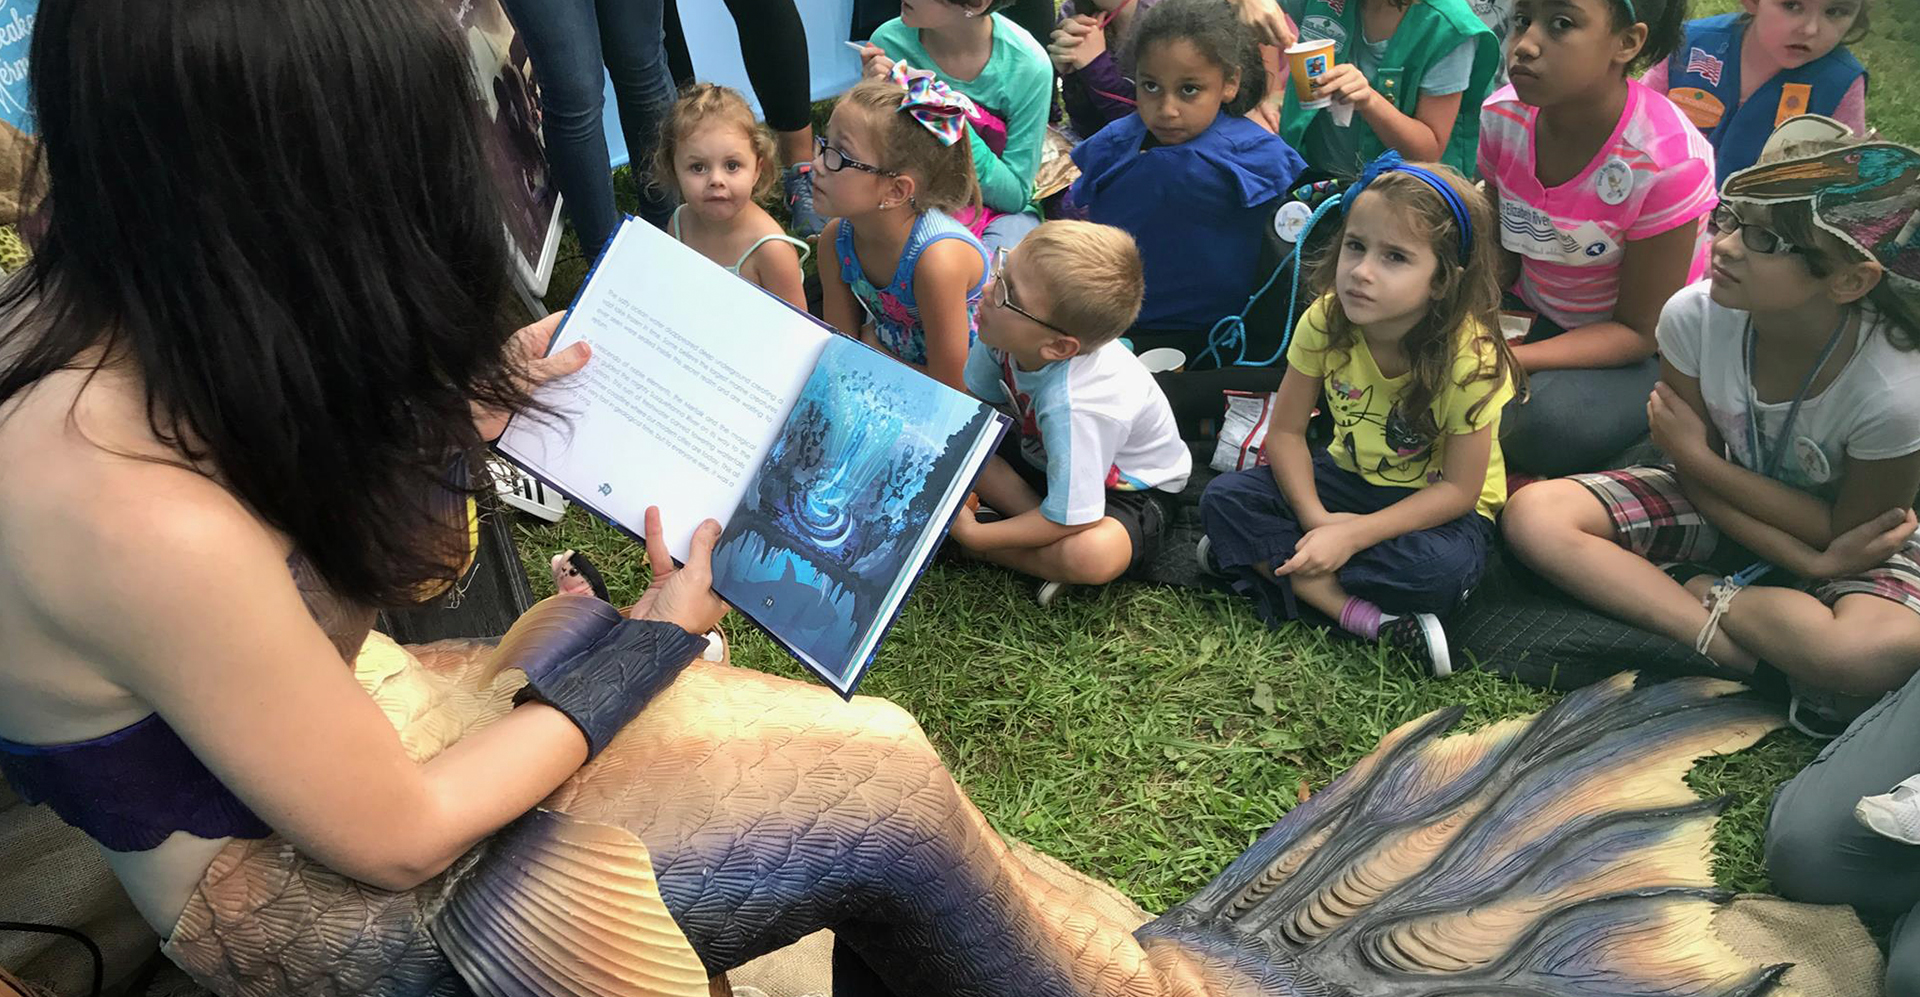 The Chesapeake Mermaid will bring her new book on tour beginning this spring.